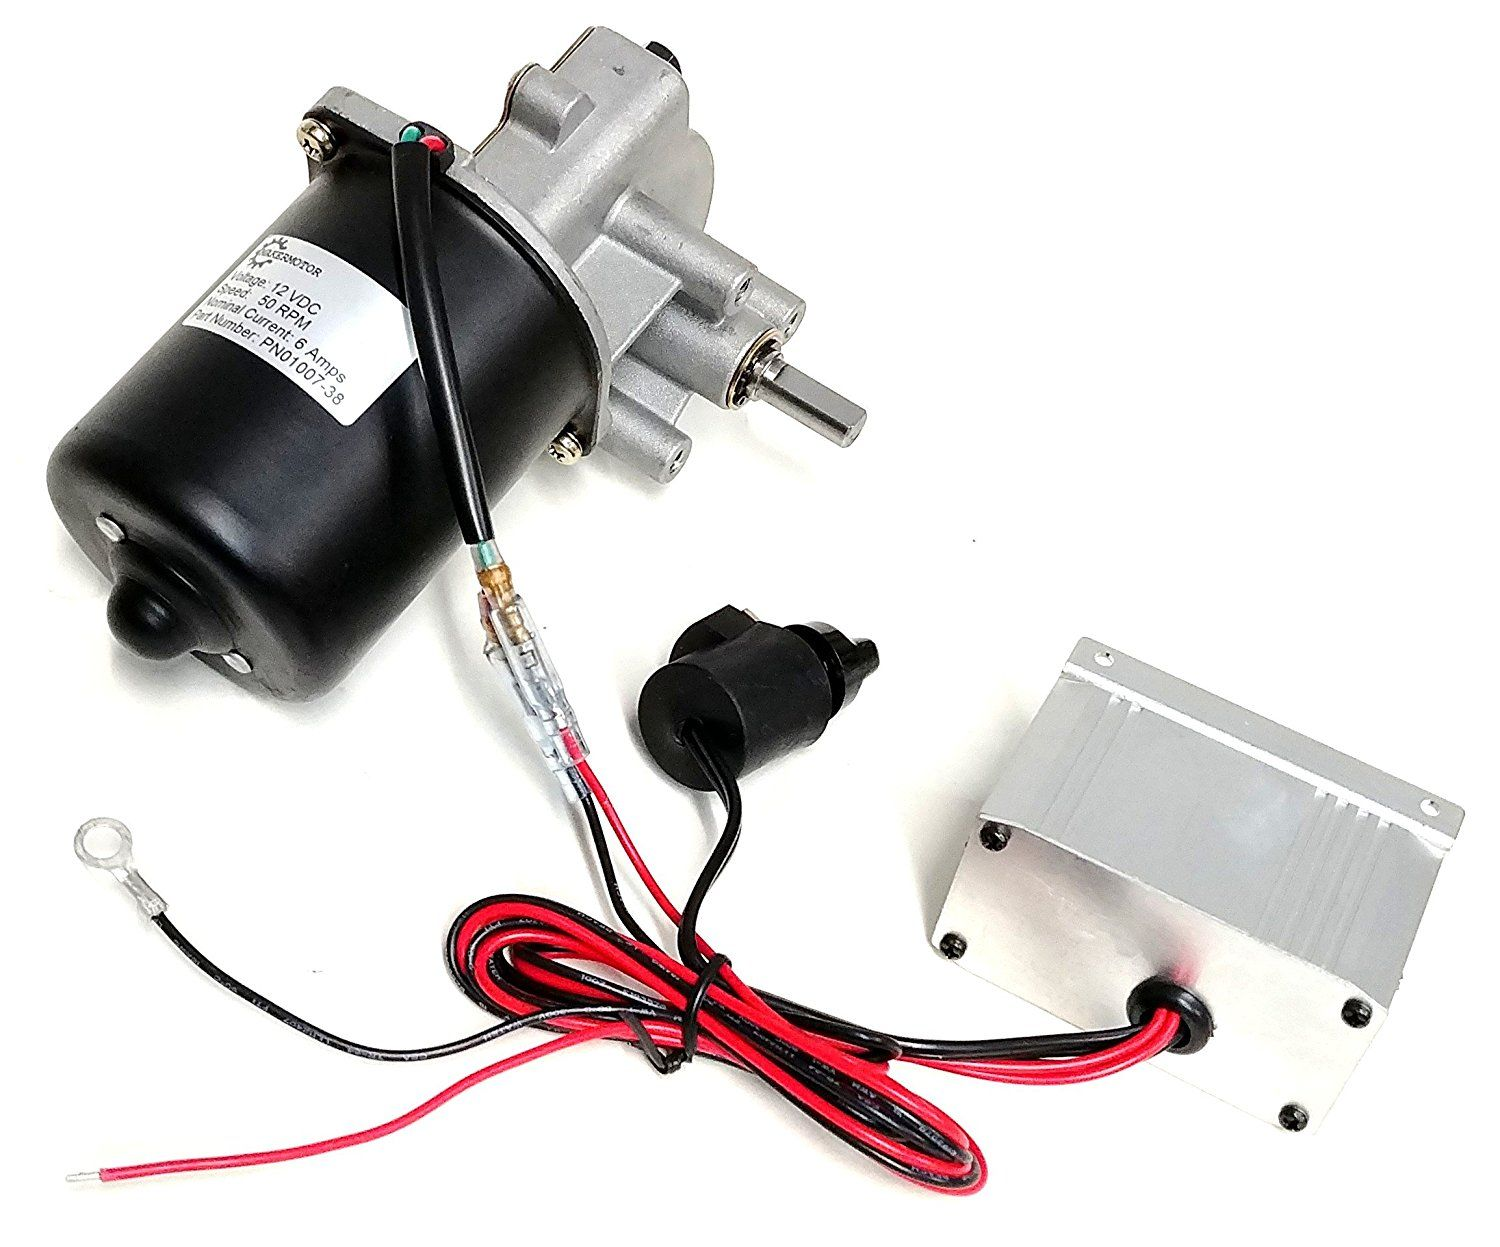 Pin On Our Featured Electric Motors And Drives